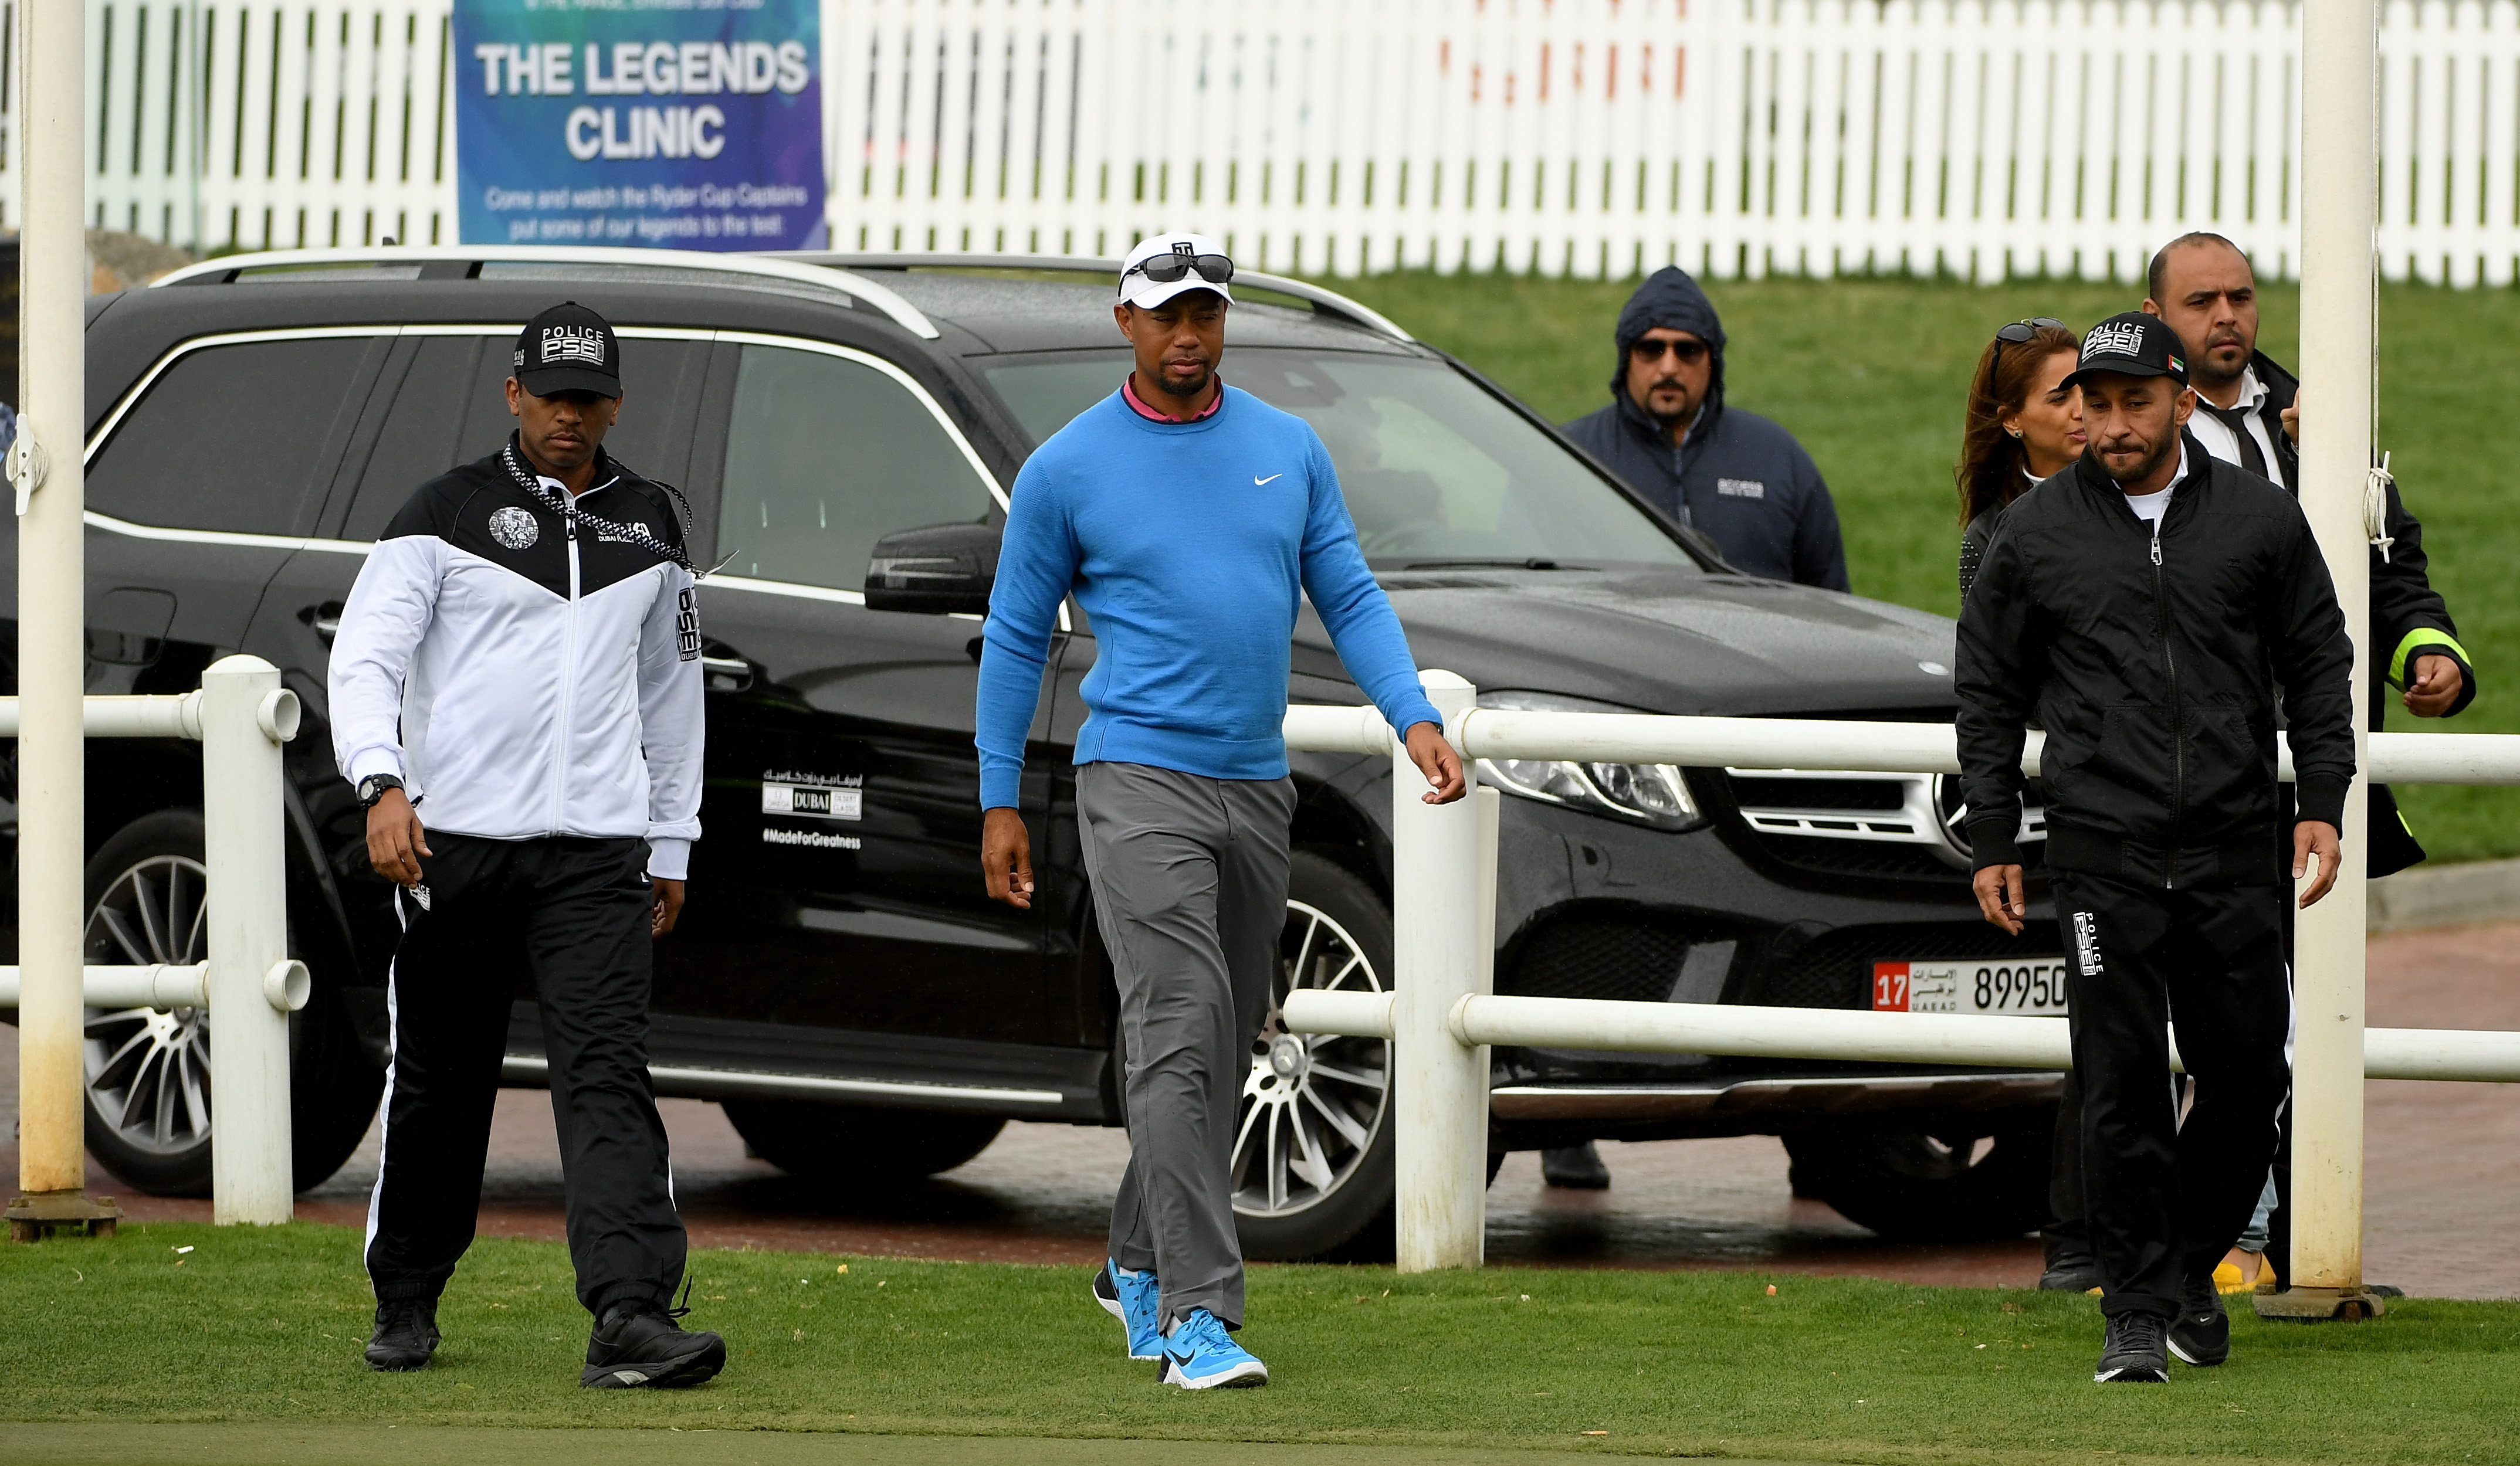 Tiger Woods withdrew ahead of his second round tee time at the Omega Dubai Desert Classic, citing back spasms.